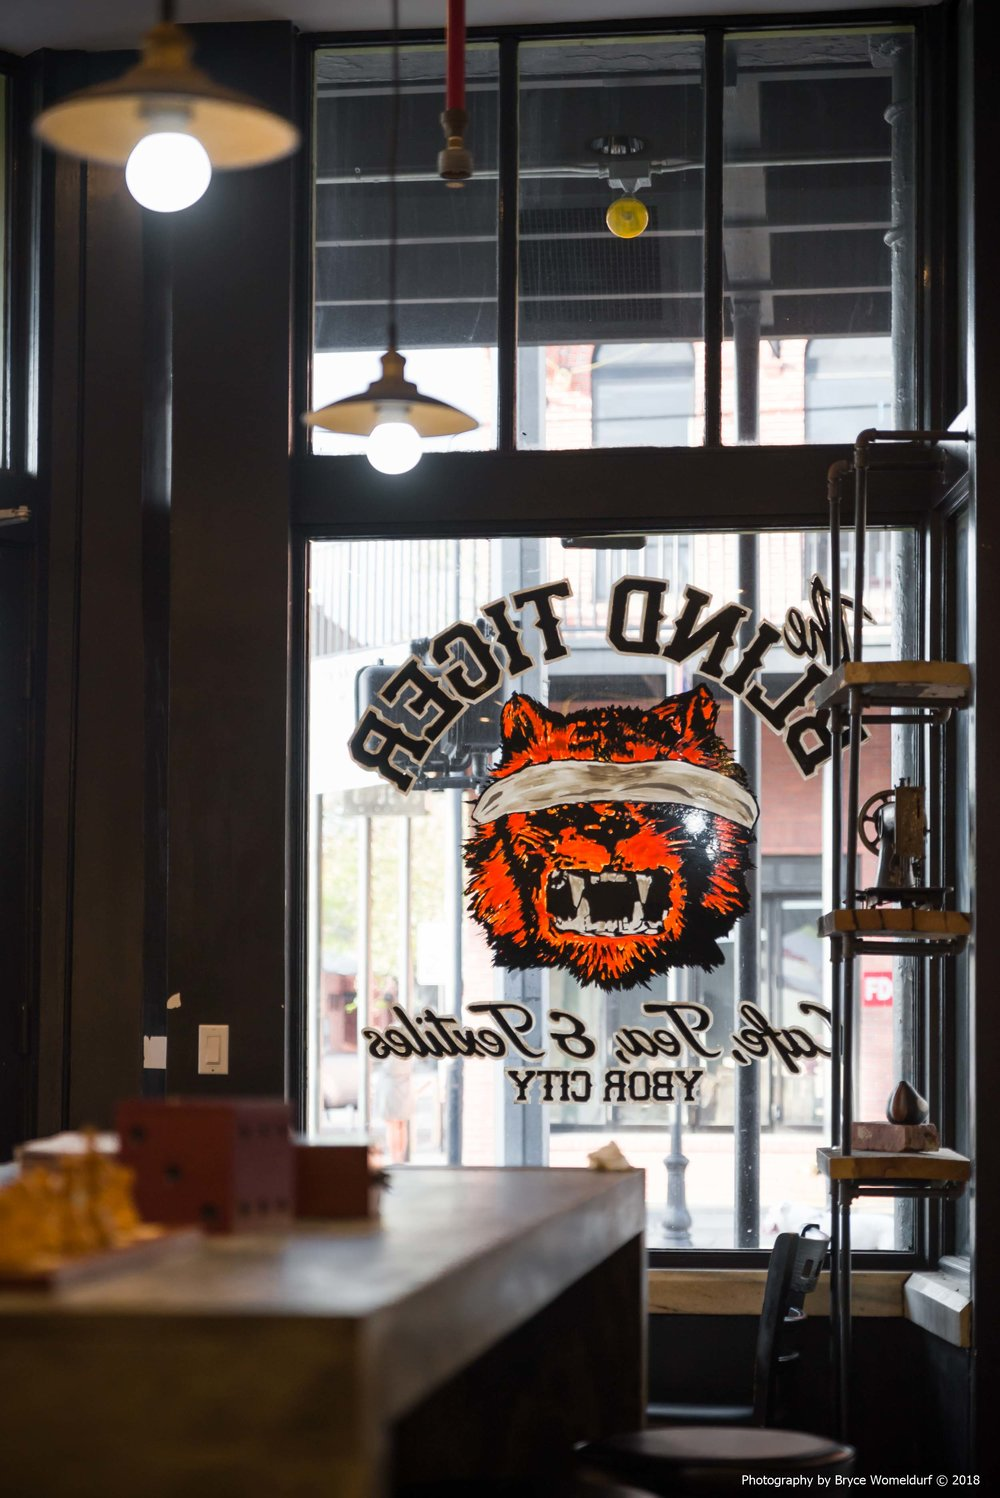 Blind Tiger coffee shop window | Ybor City, Florida